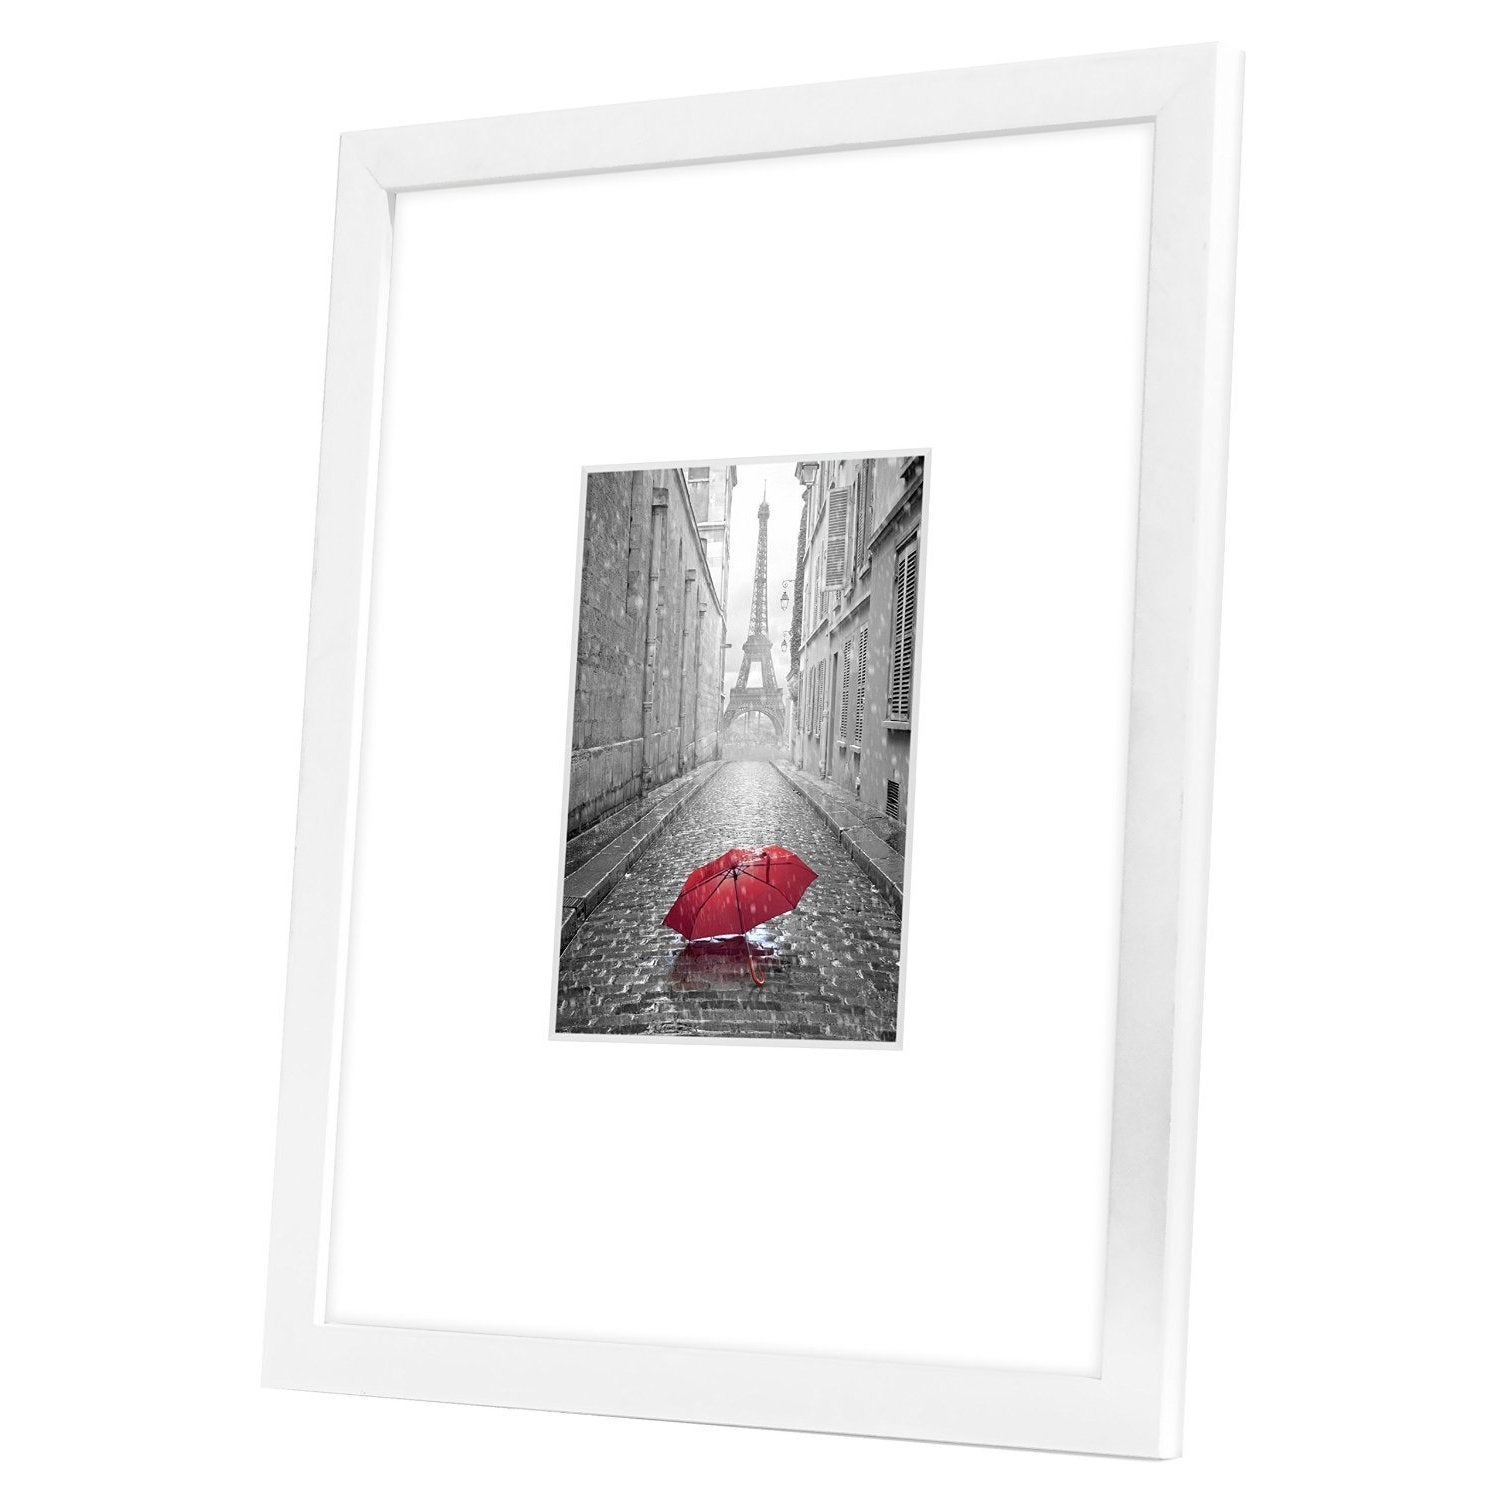 11x14 white picture frame matted to fit pictures 5x7 inches or 11x14 white picture frame matted to fit pictures 5x7 inches or 11x14 without mat white mat glass front ready to hang free shipping on orders over jeuxipadfo Image collections